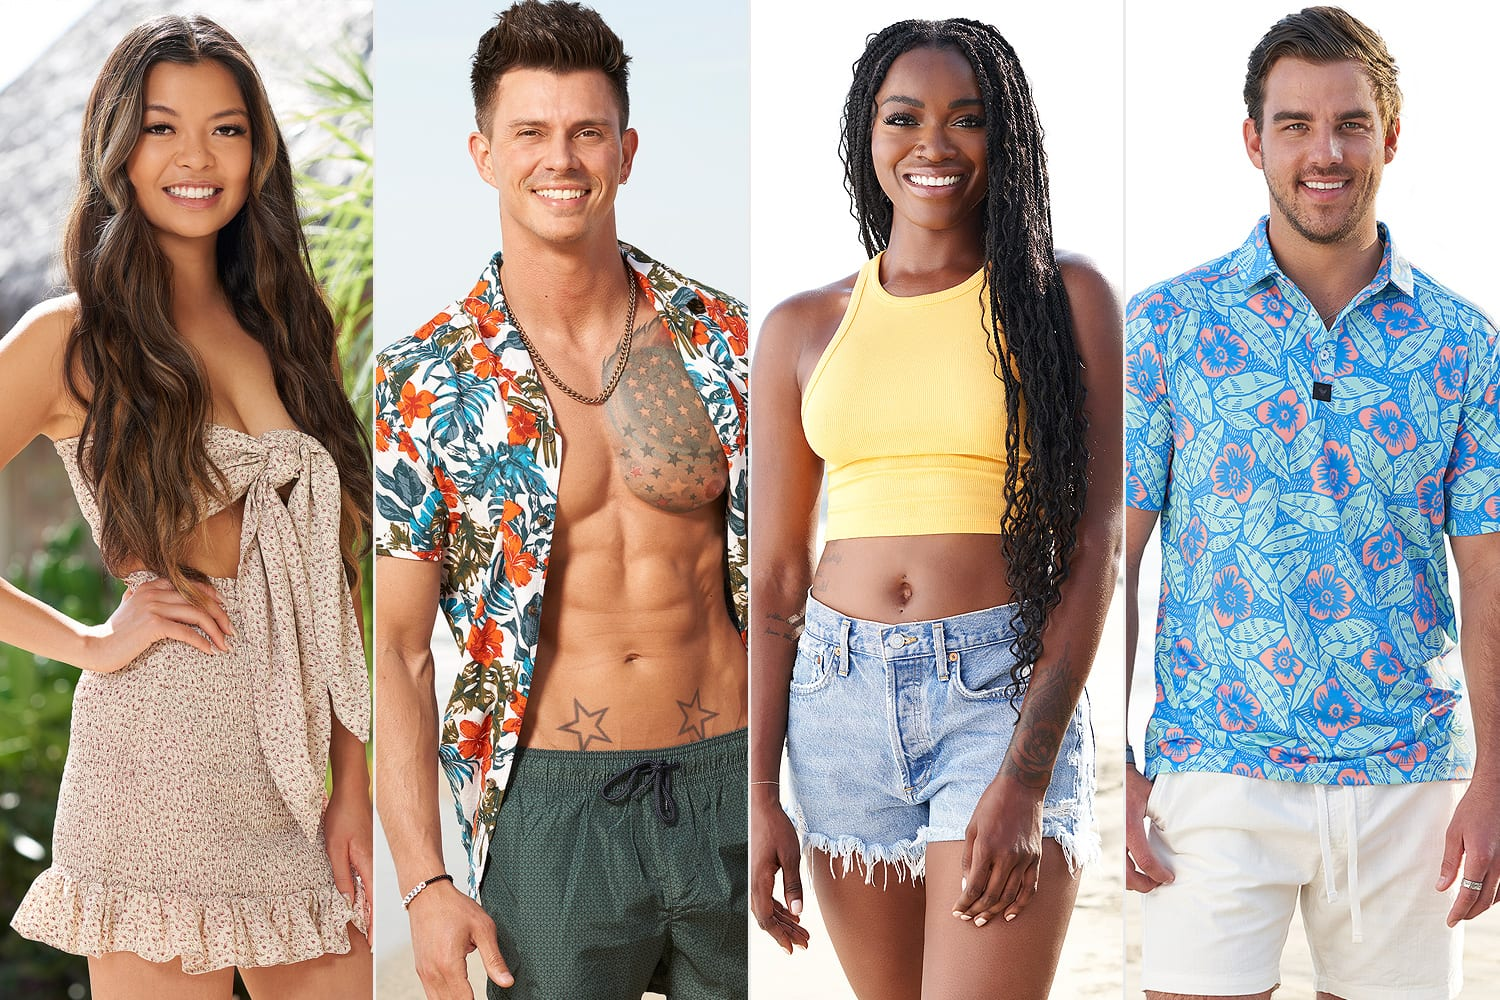 Bachelor in Paradise New Cast Revealed